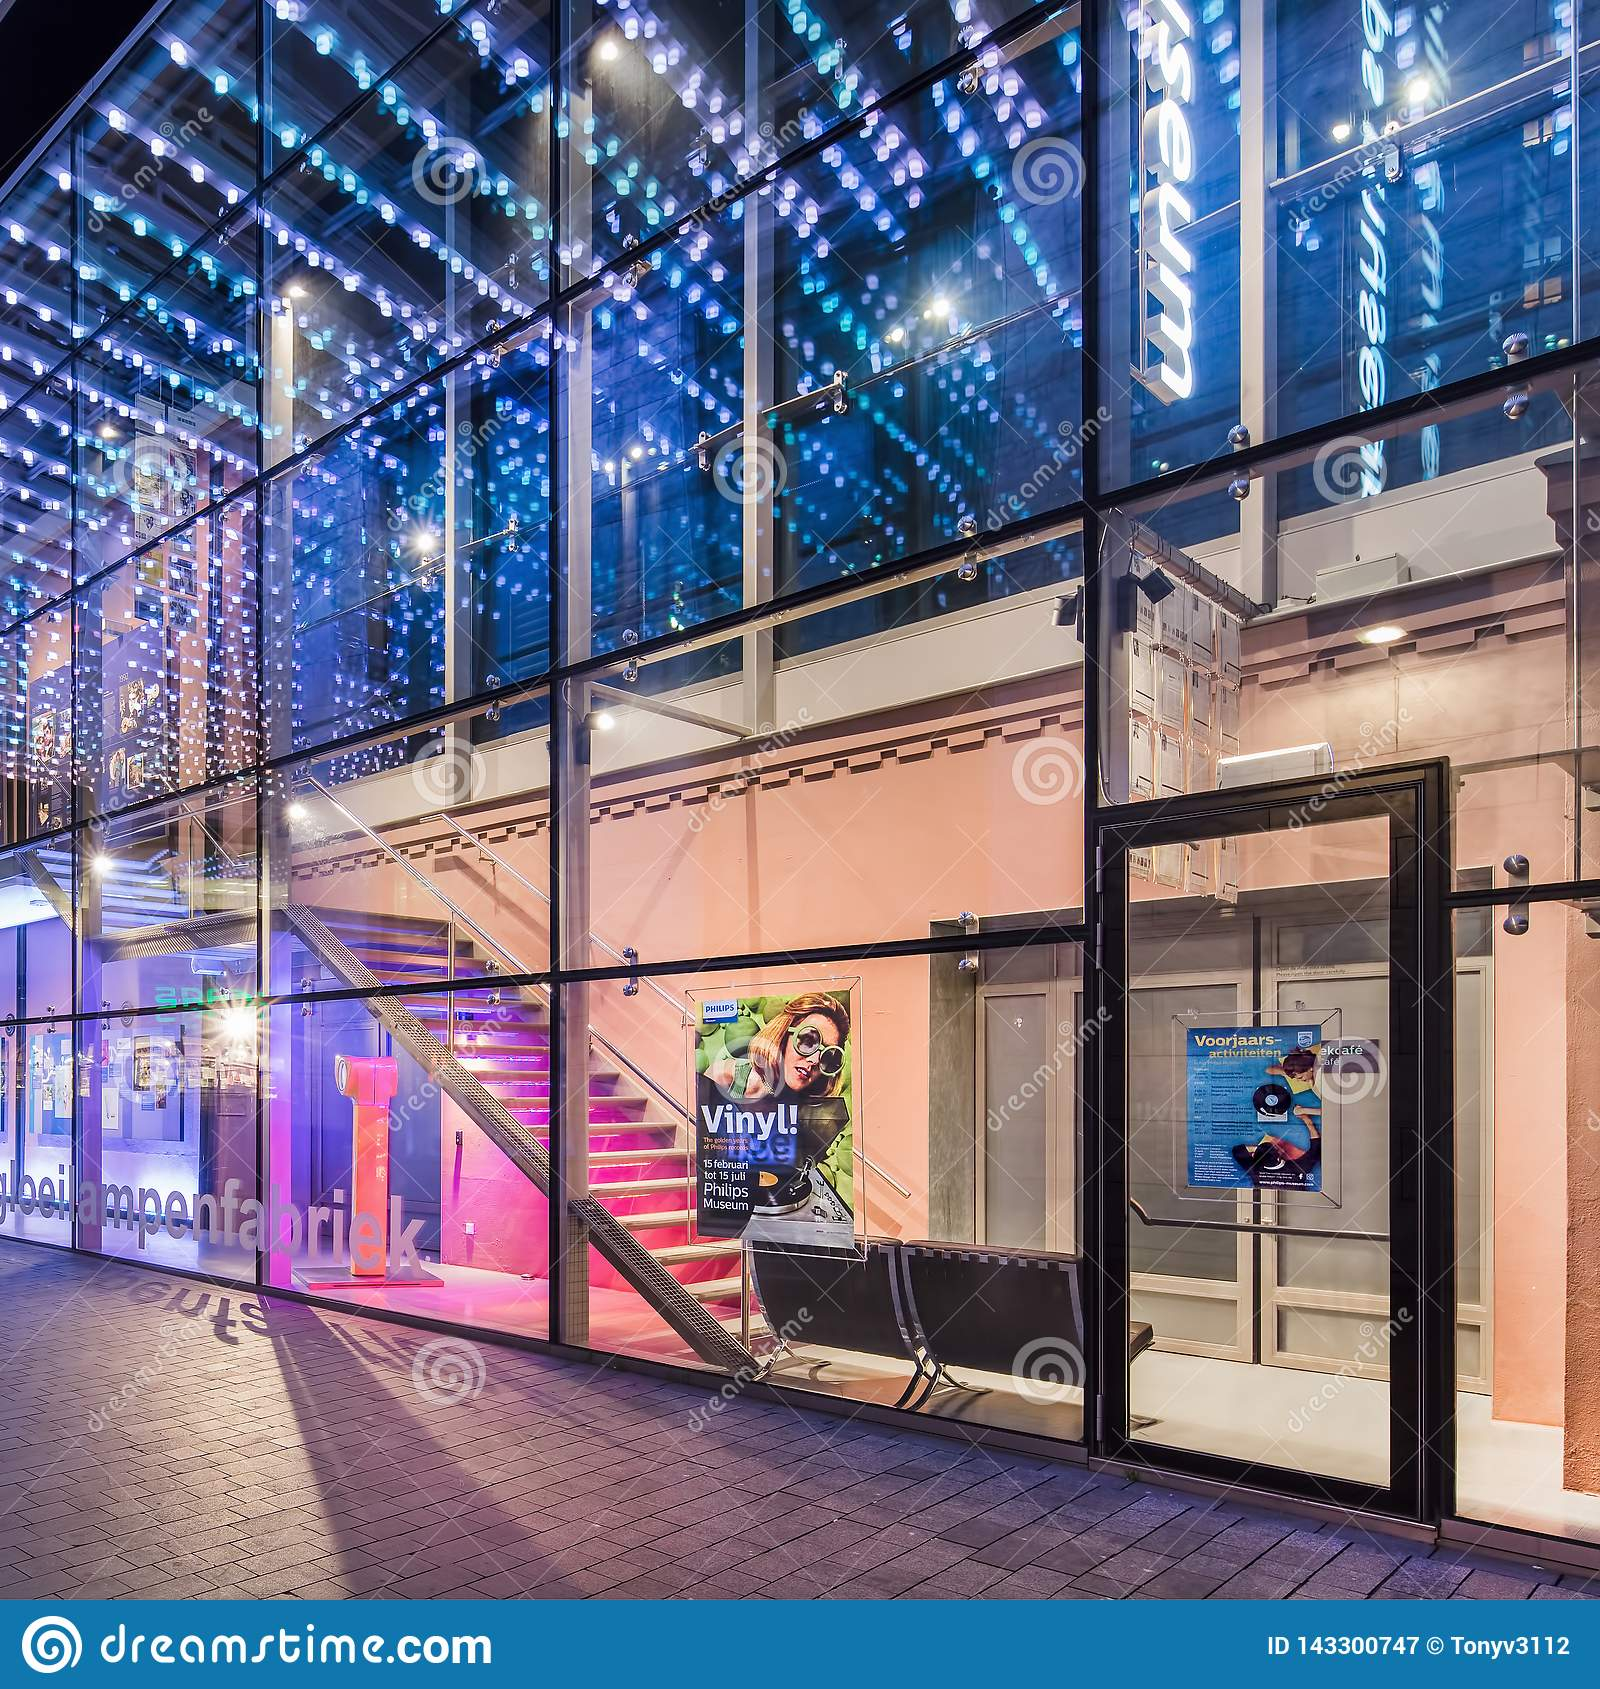 Illuminated Facade Of The Philips Museum In Eindhoven, The